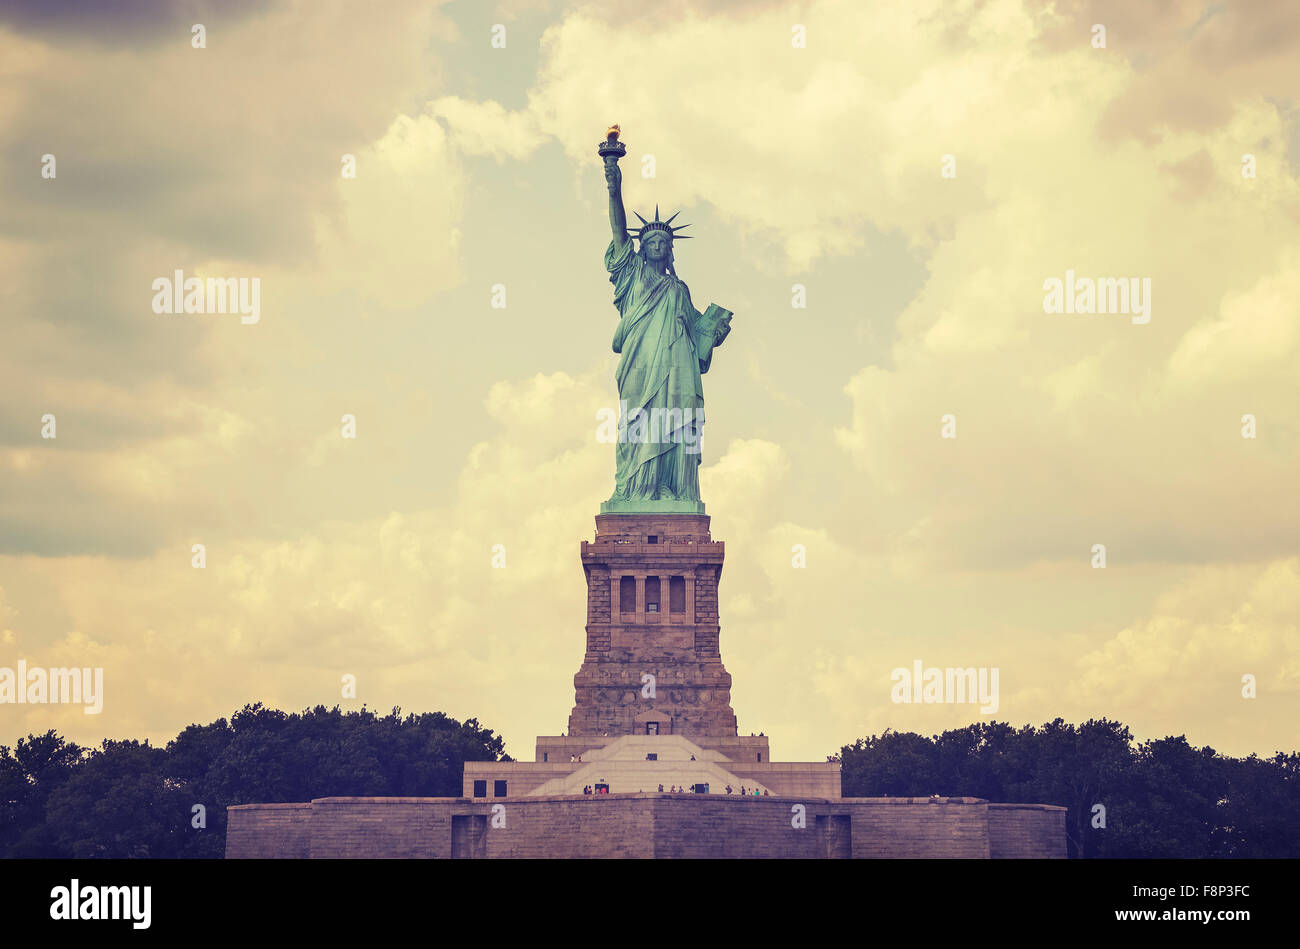 Vintage toned Statue of Liberty, NYC, USA. - Stock Image